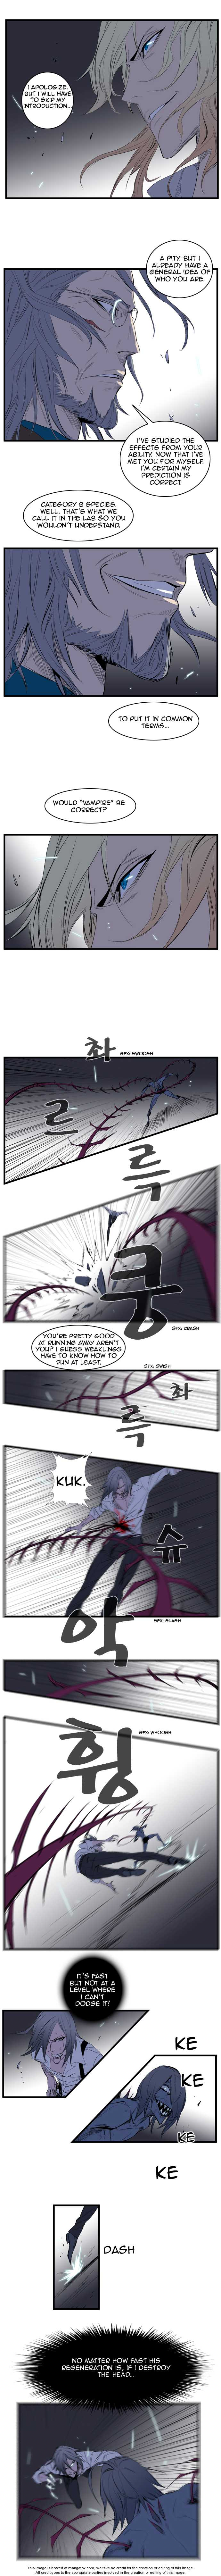 Noblesse 88 Page 2